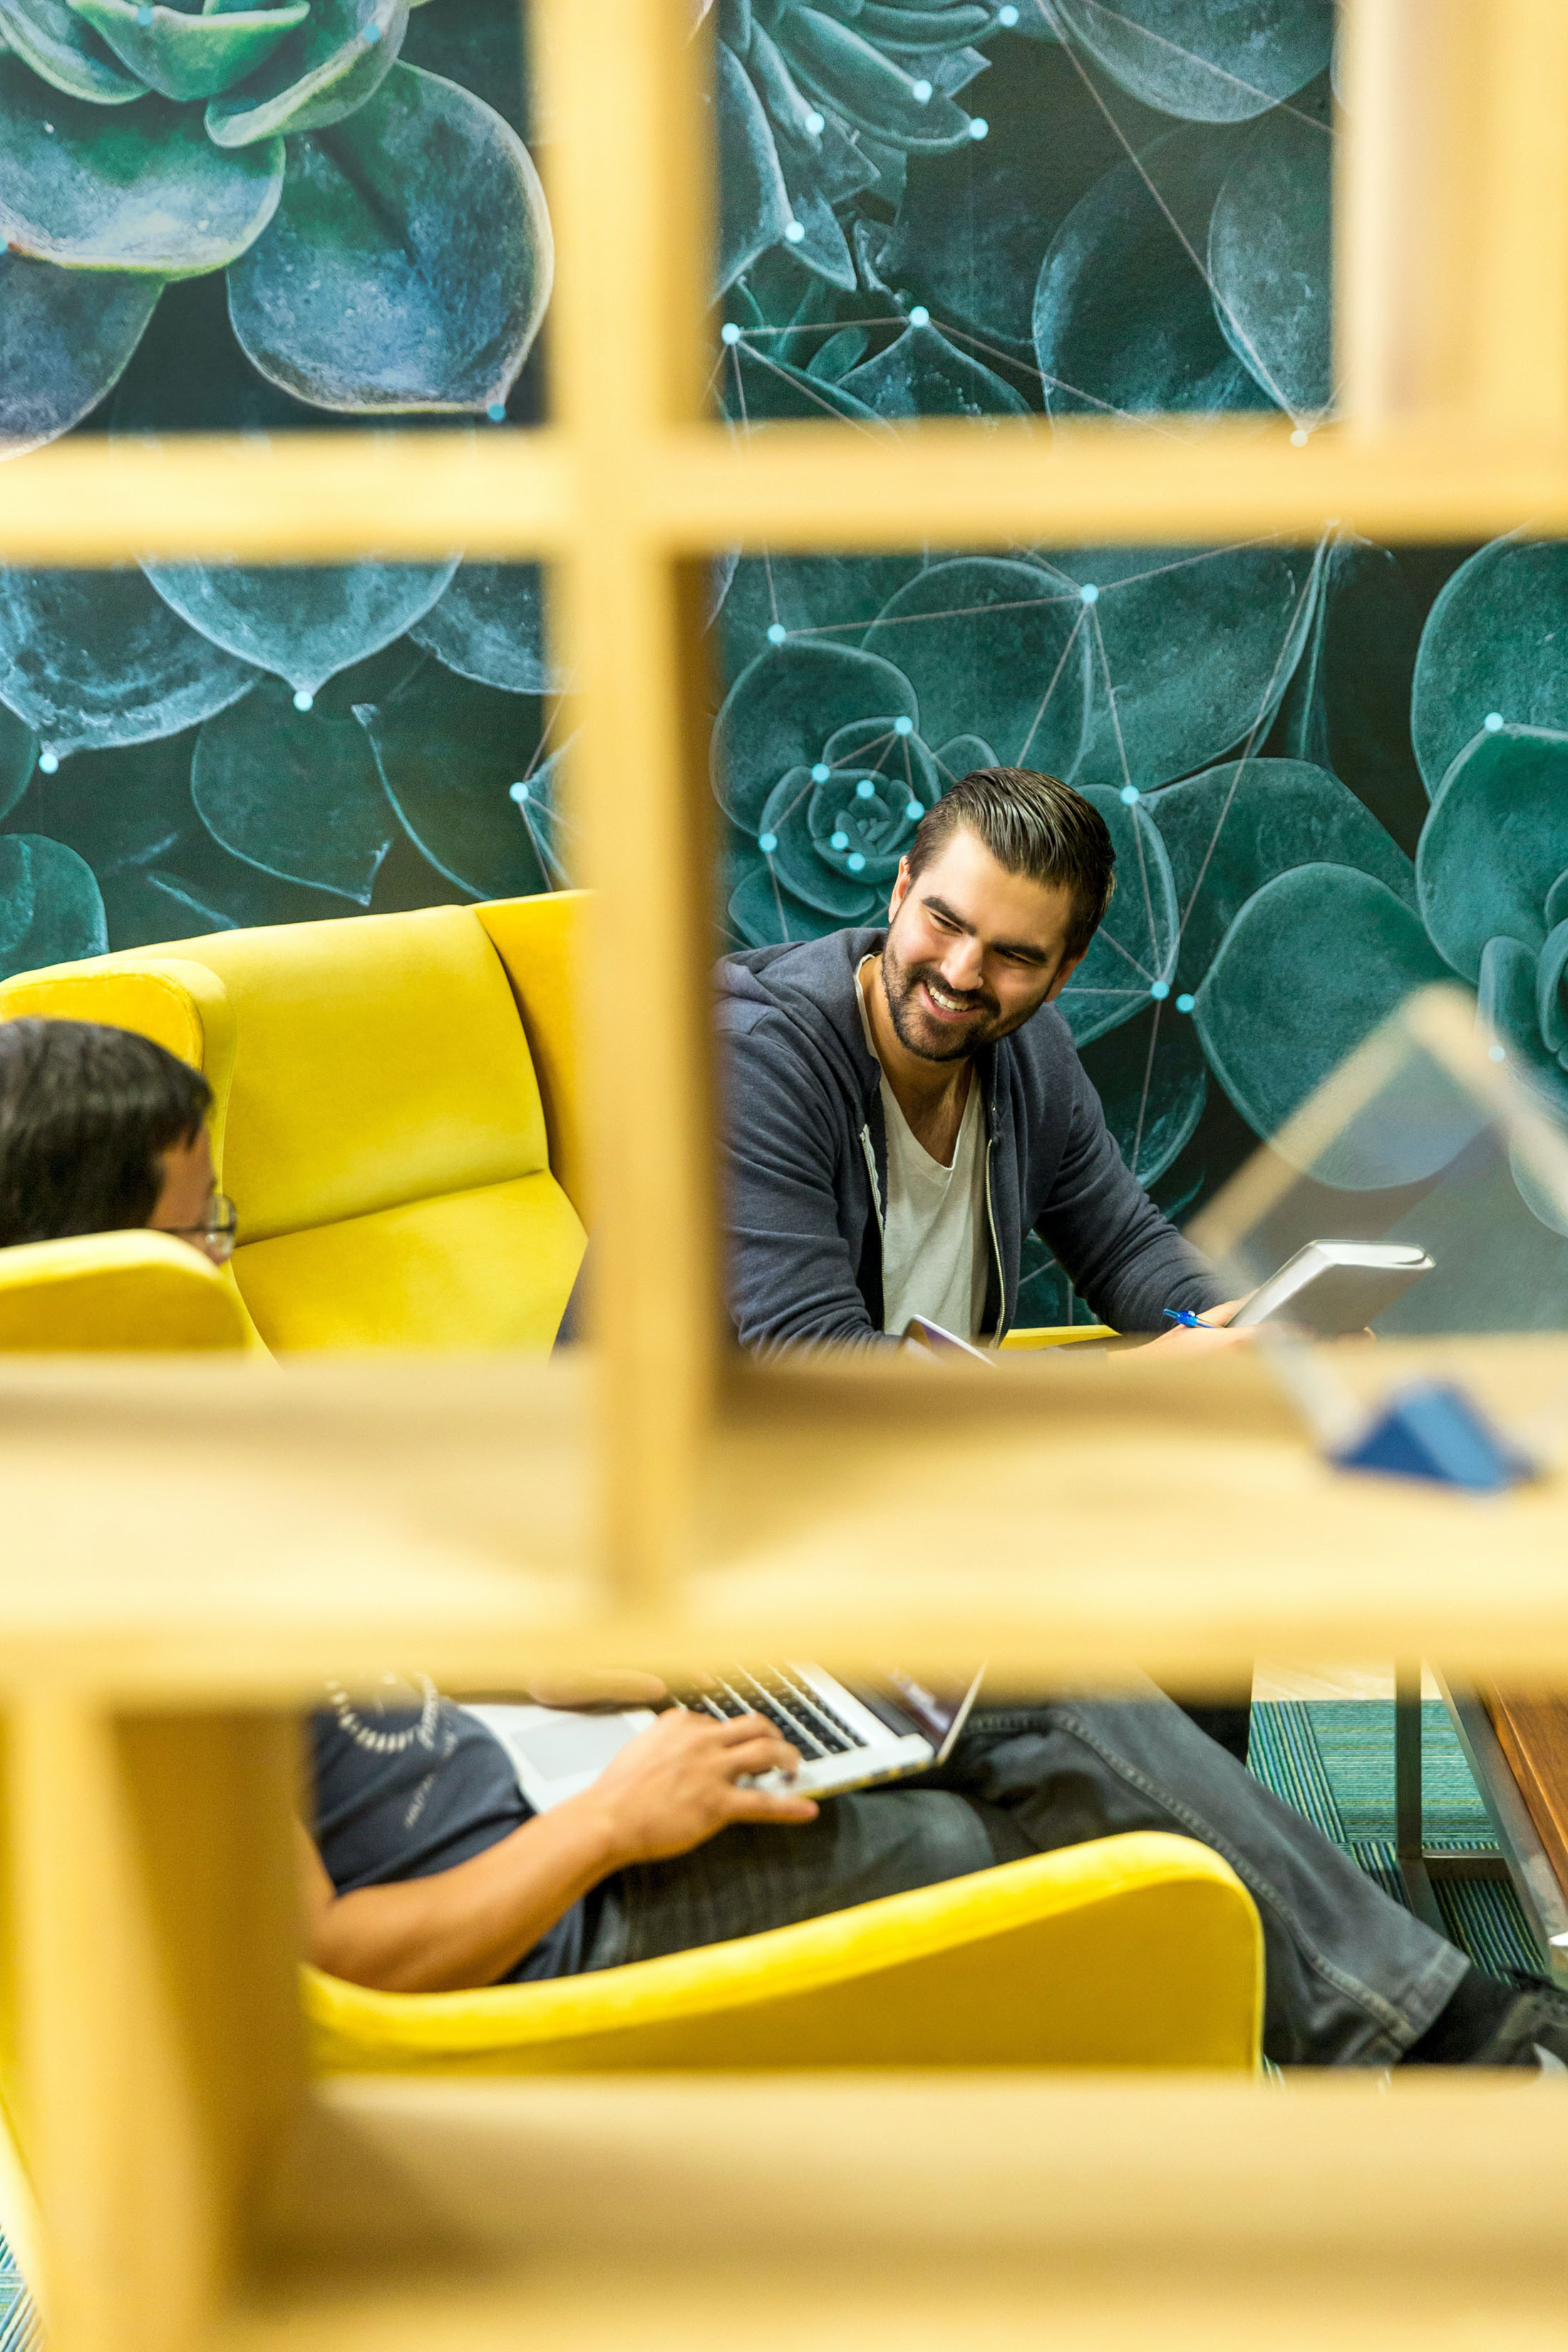 professional man working in open space office smiling laughing positive experience